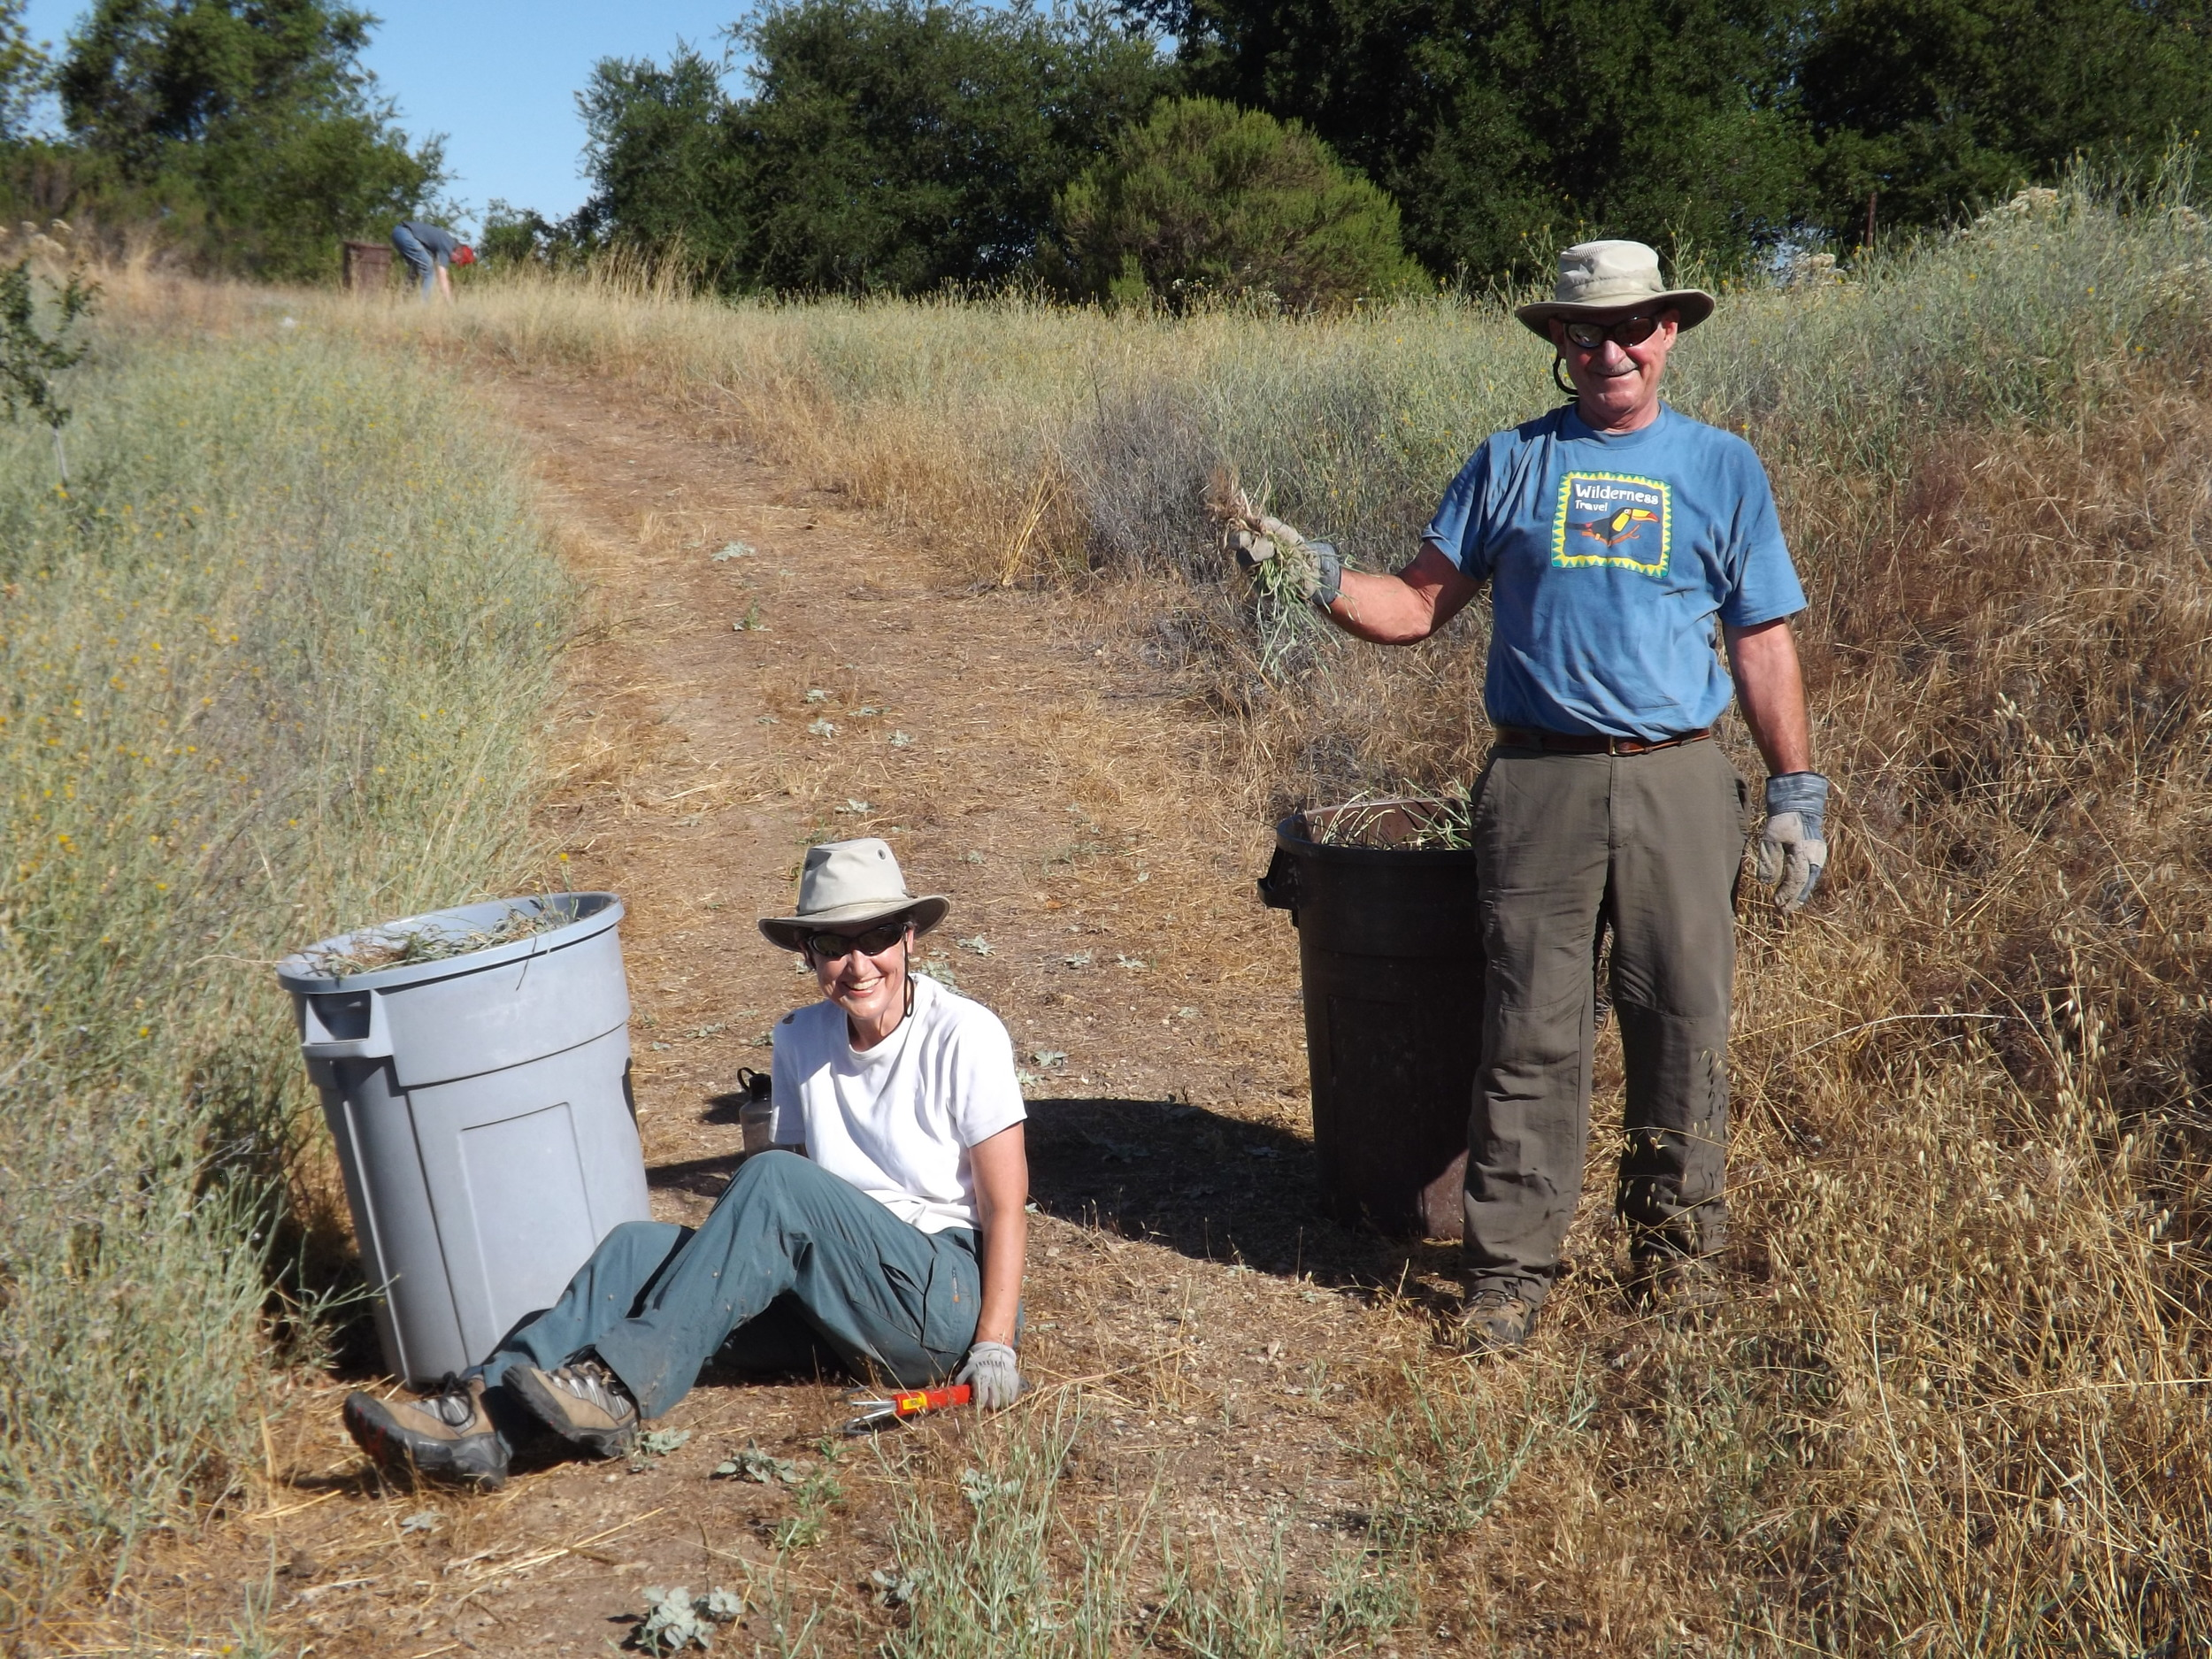 MARGARET MAGNUS is sitting down on the job (to avoid too much stooping) and Sam Ervin is showing the fruits of his labor in removing Yellow Starthistle. (Photo: Leslie Bridger, 2012)